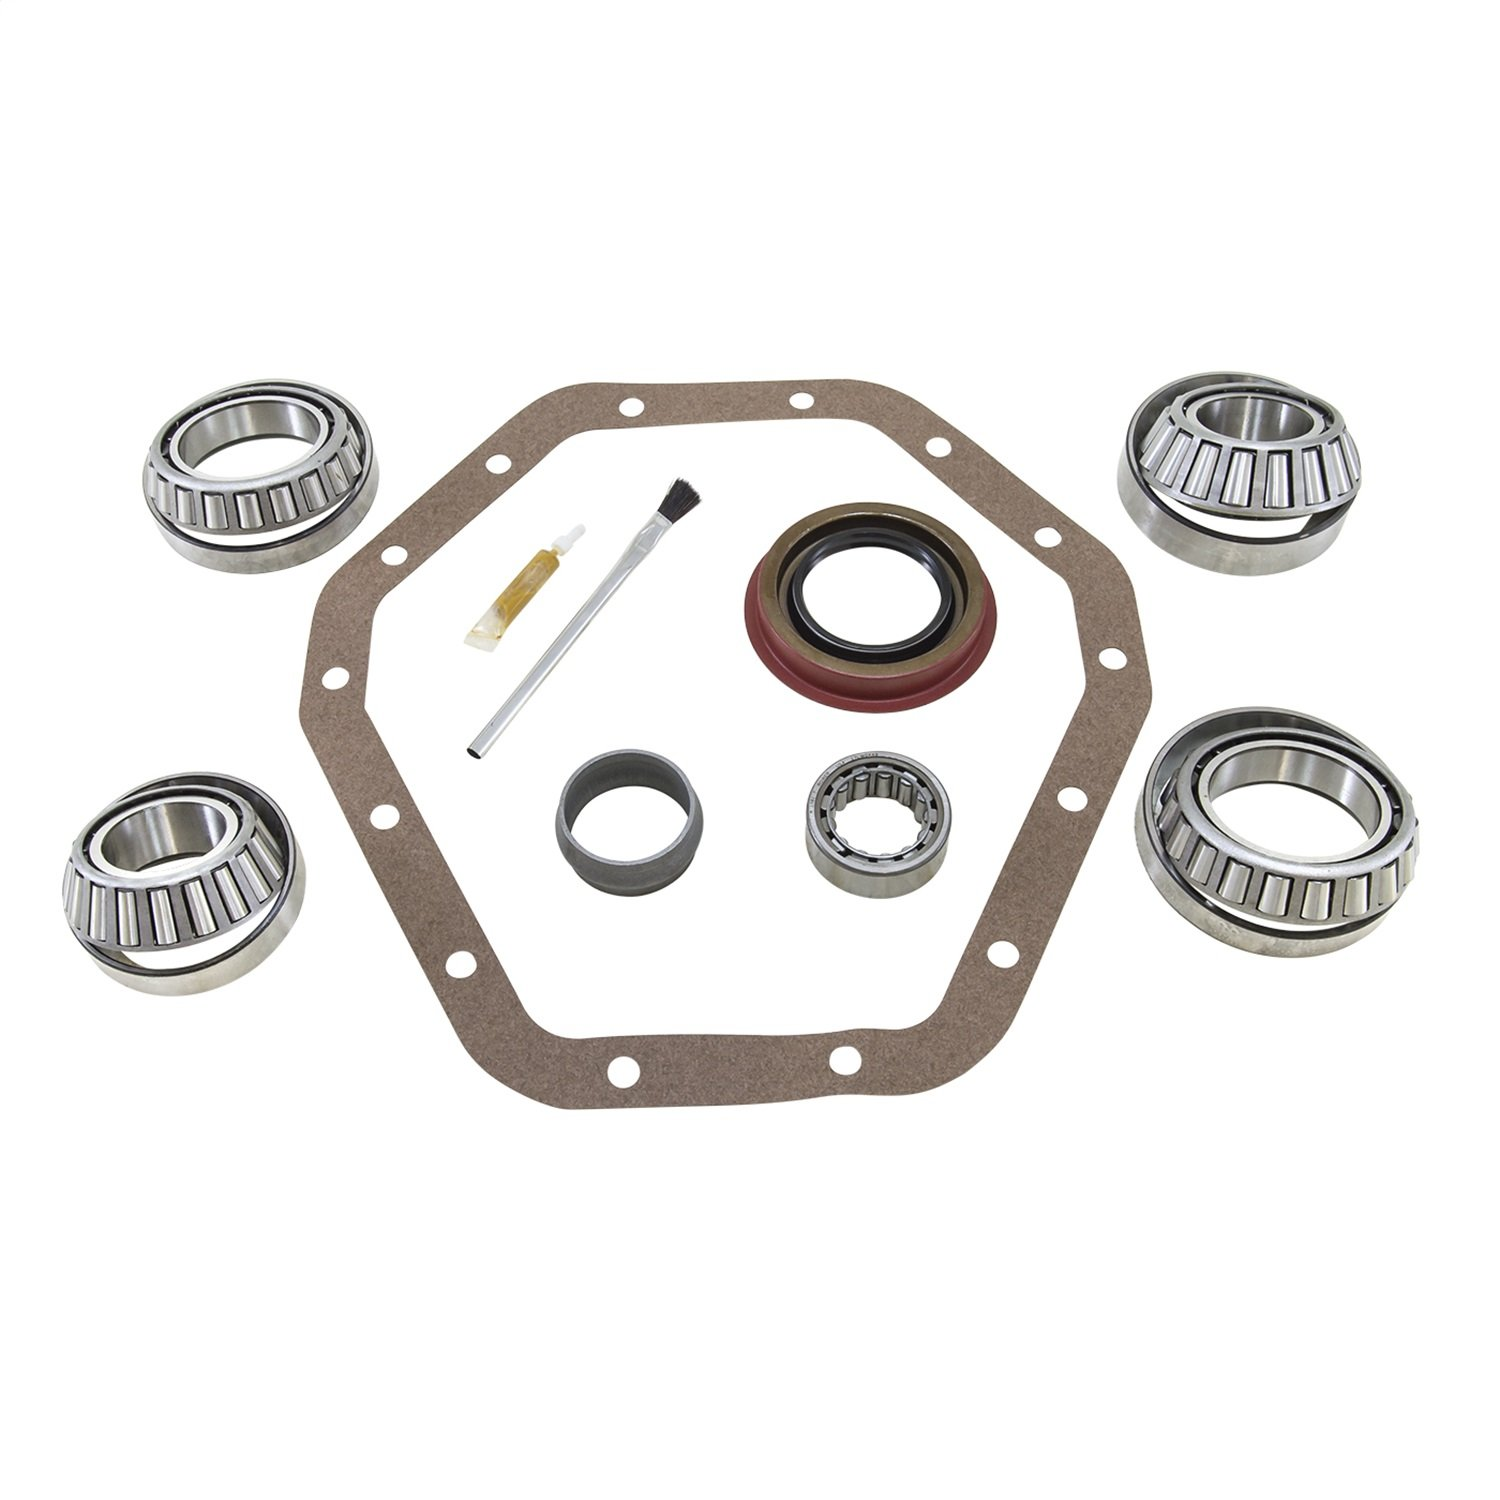 USA Standard Gear (ZBKGM14T-C) Bearing Kit for GM 14-Bolt Truck 10.5'' Differential